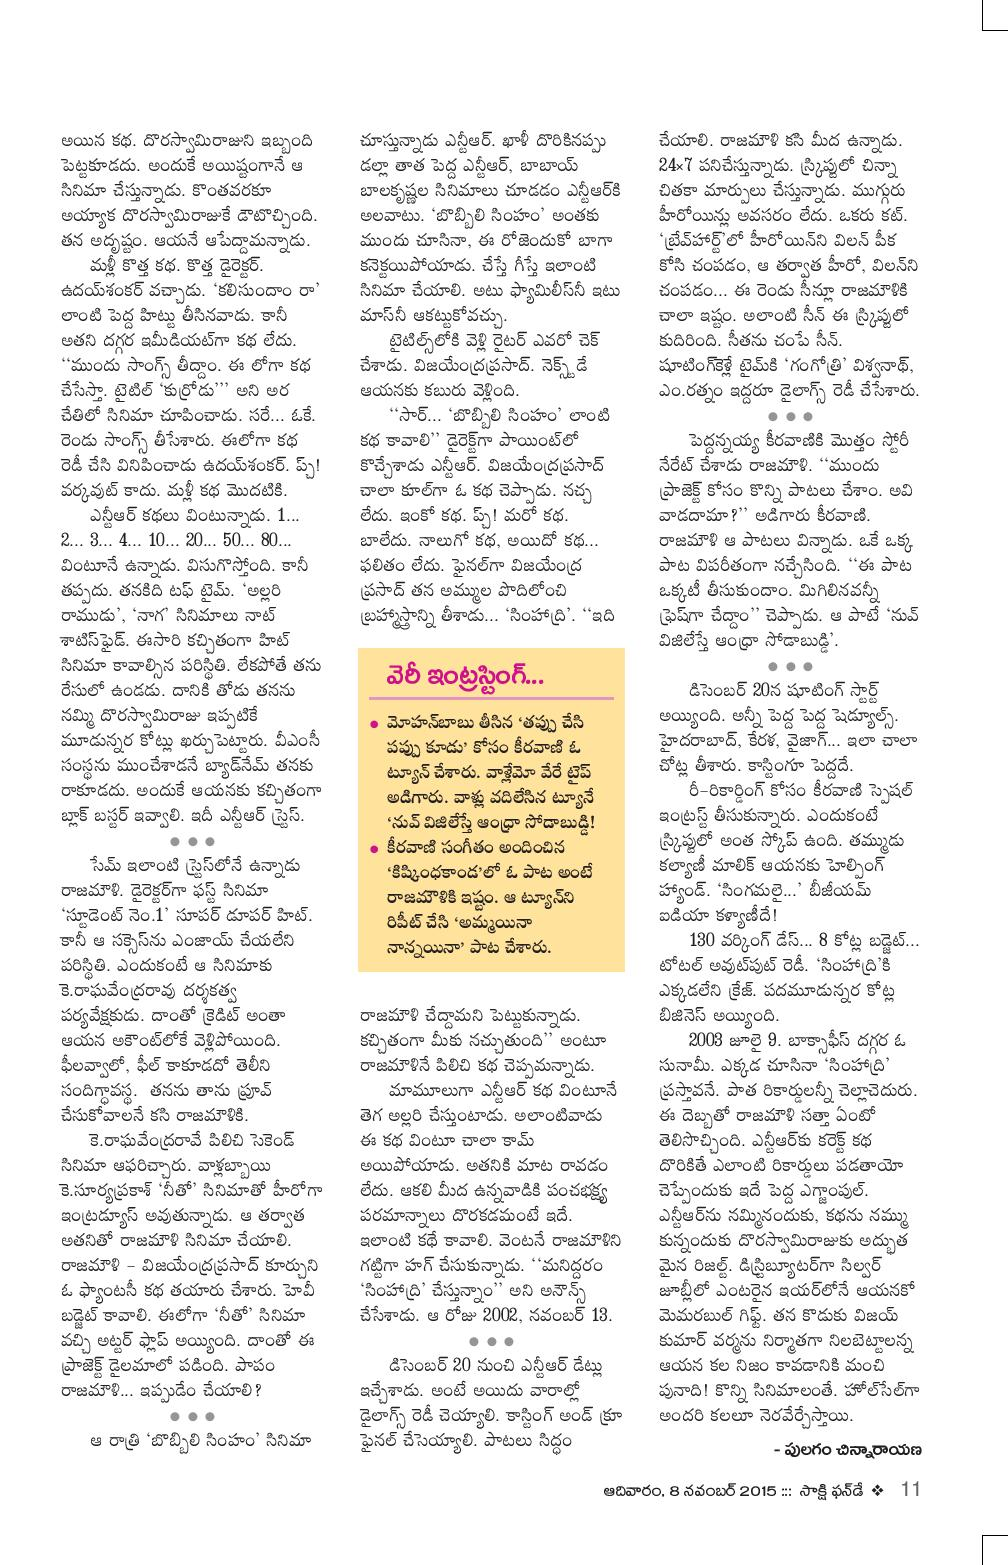 Cinema Venuka Story_Simhadri_Funday (08-11-2015)-page-002